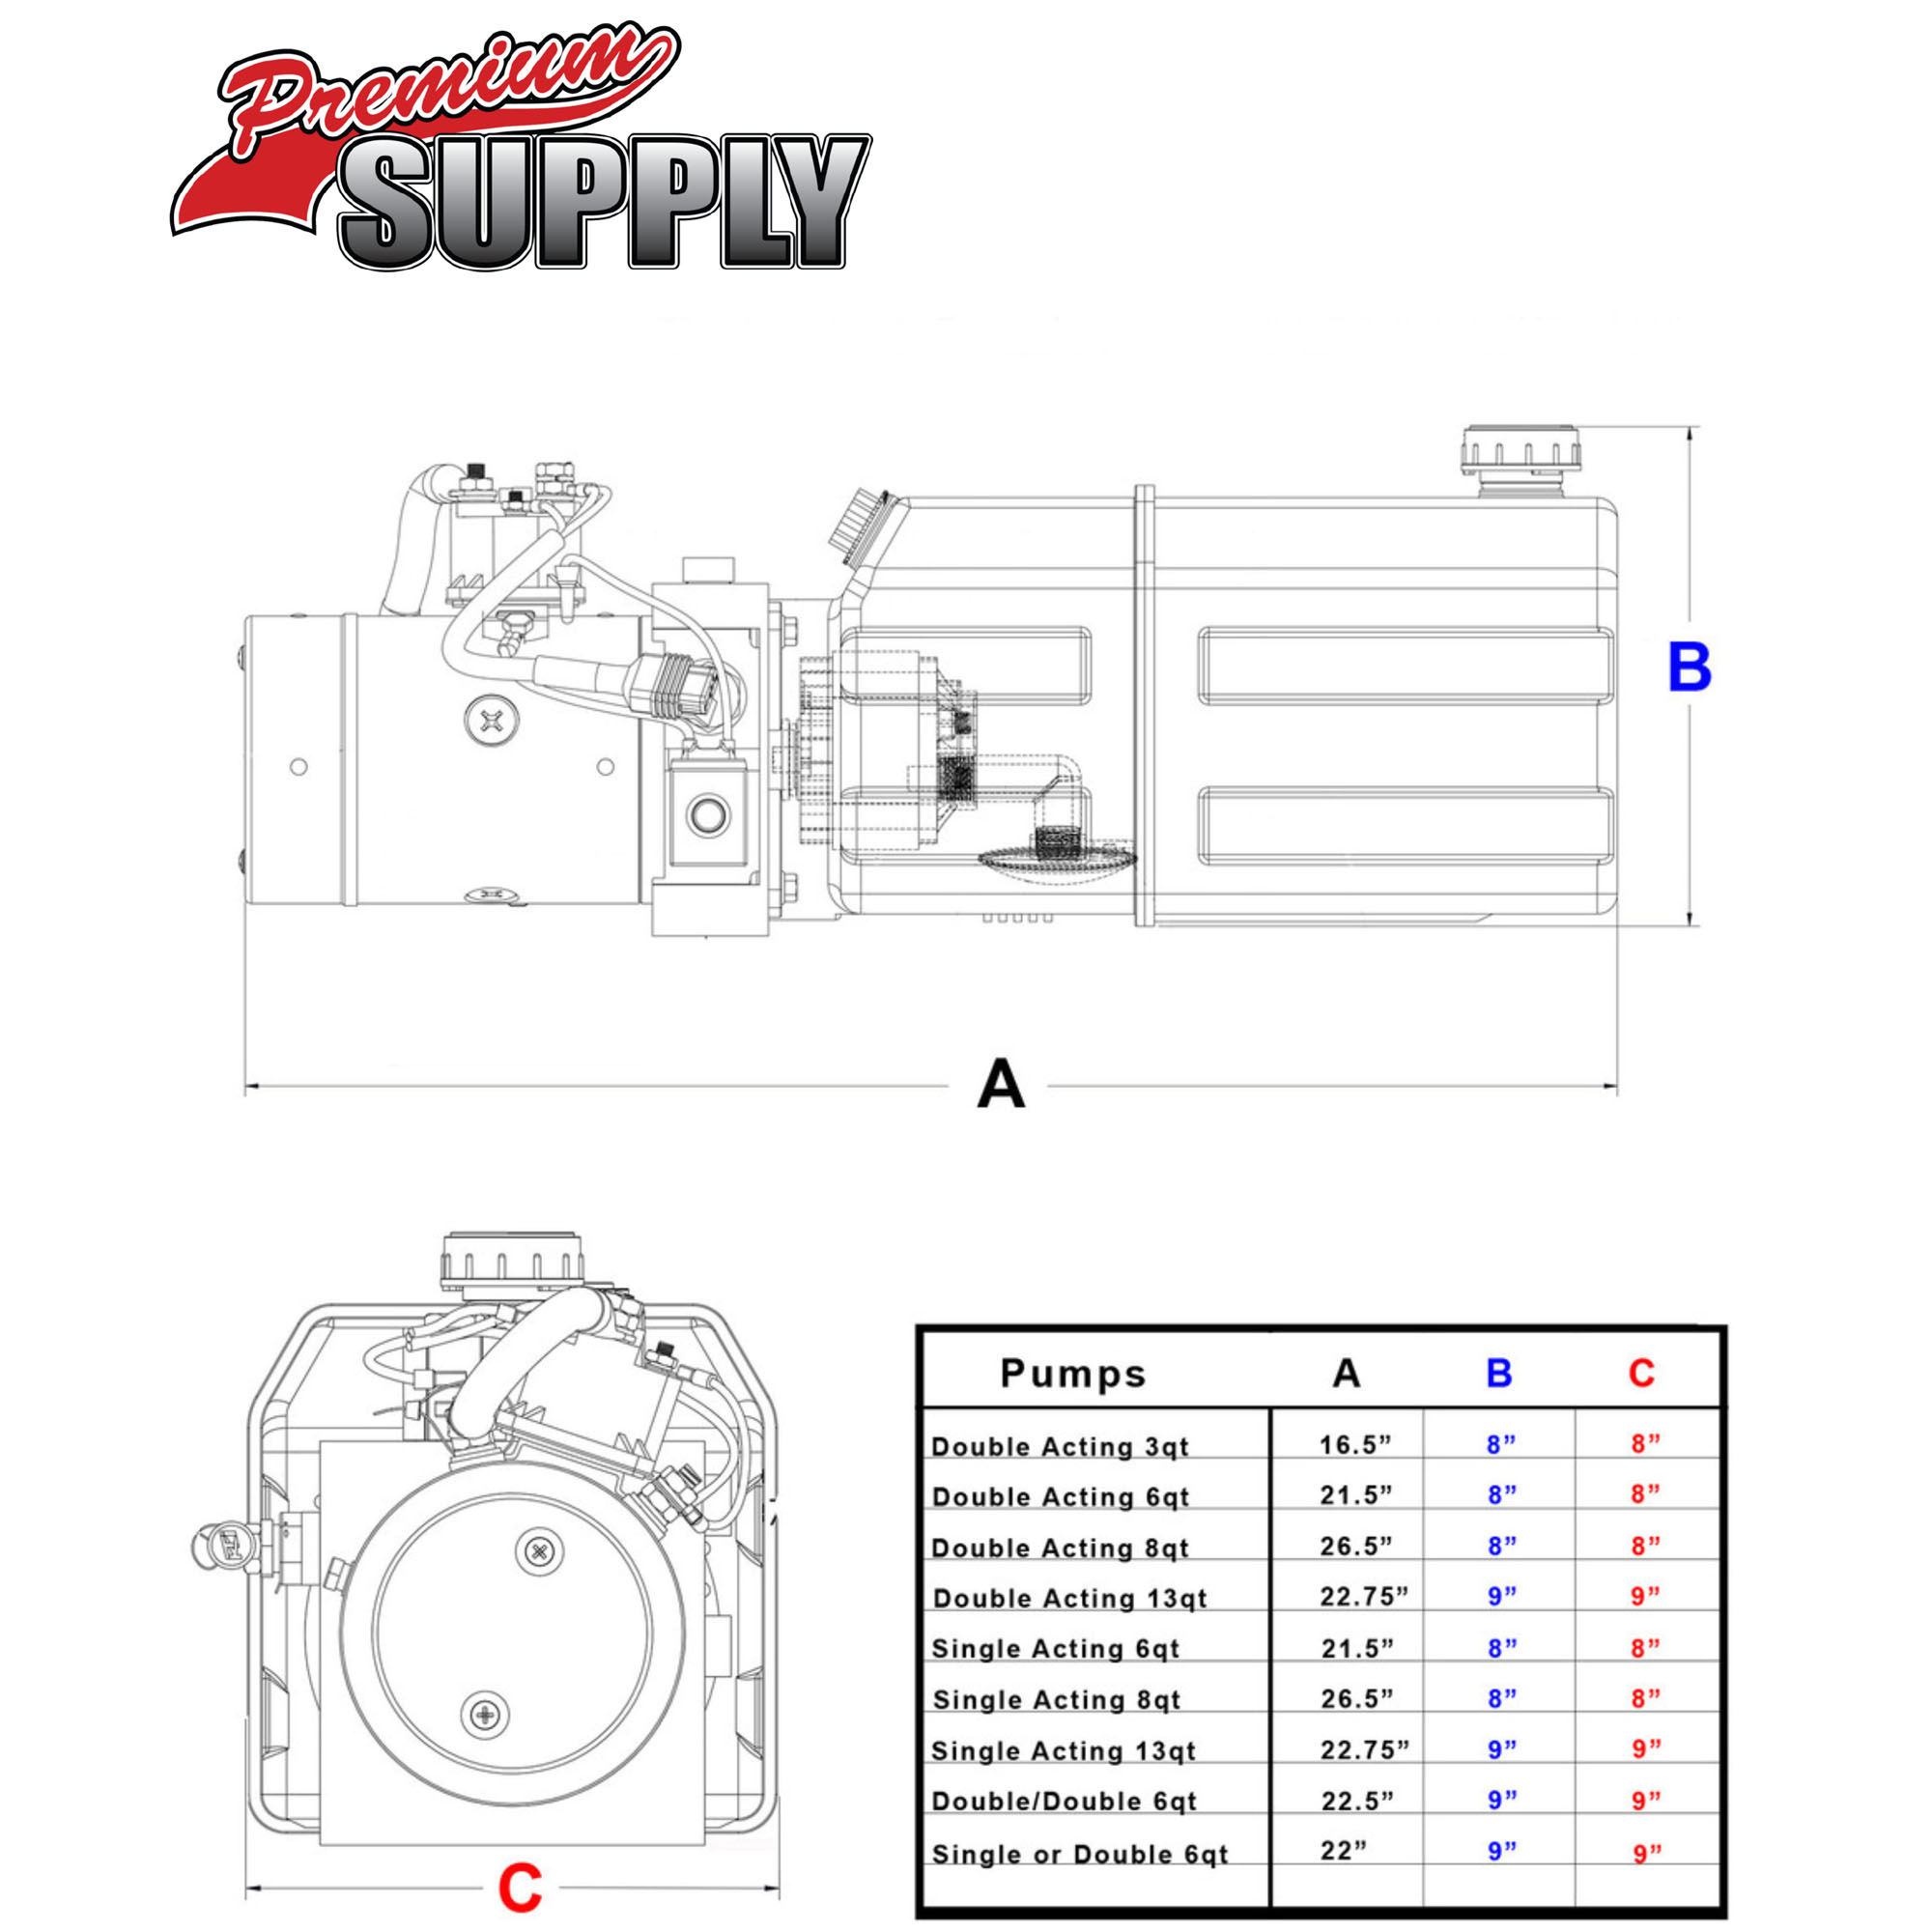 12 volt hydraulic pump motor wiring diagram